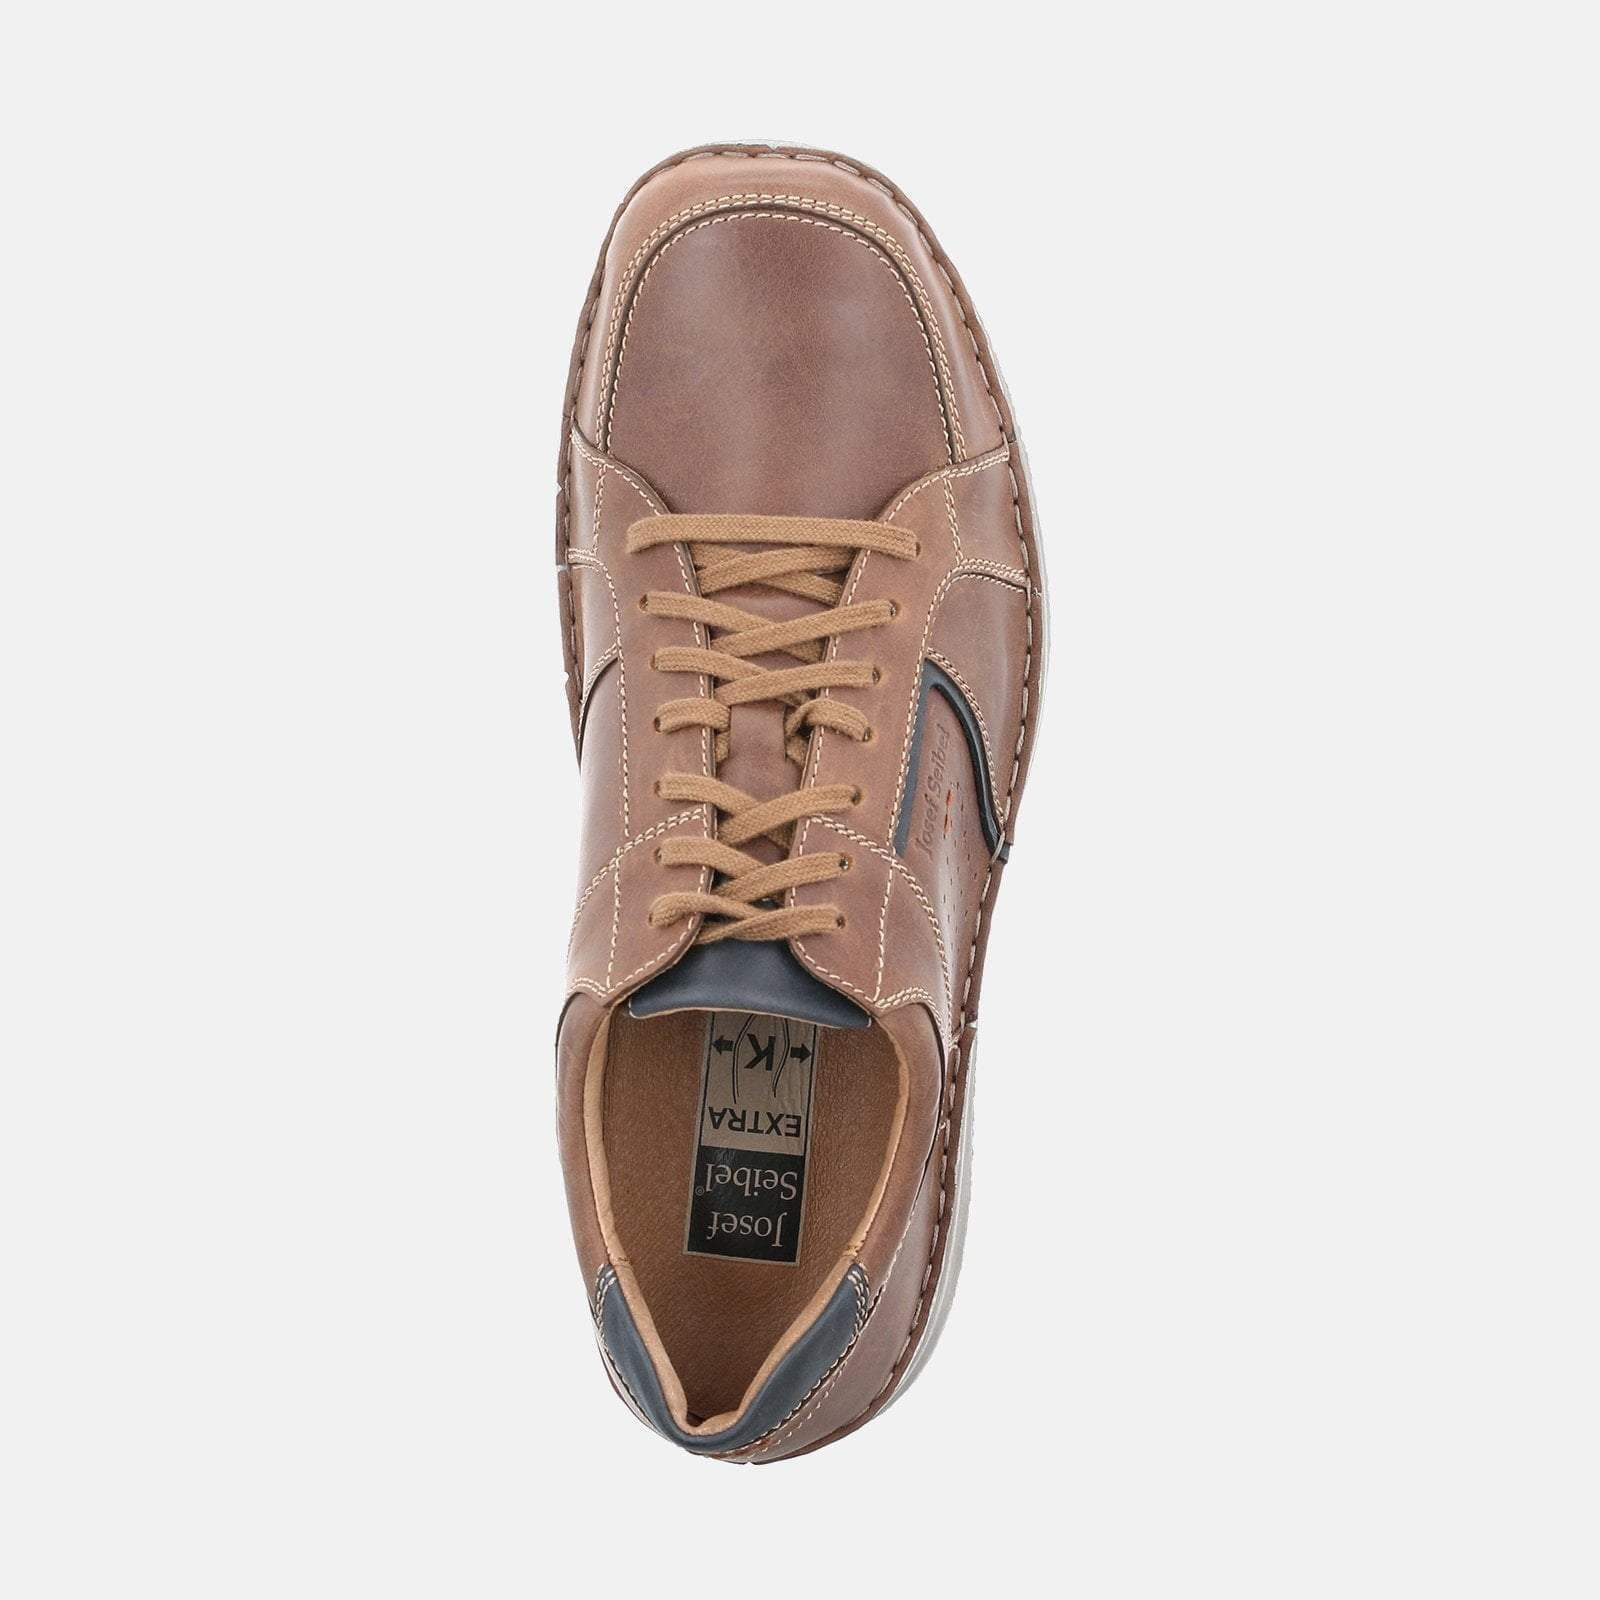 Josef Seibel Footwear Anvers 59 Castagne Kombi - Josef Seibel Brown Tan Leather  Casual Shoes